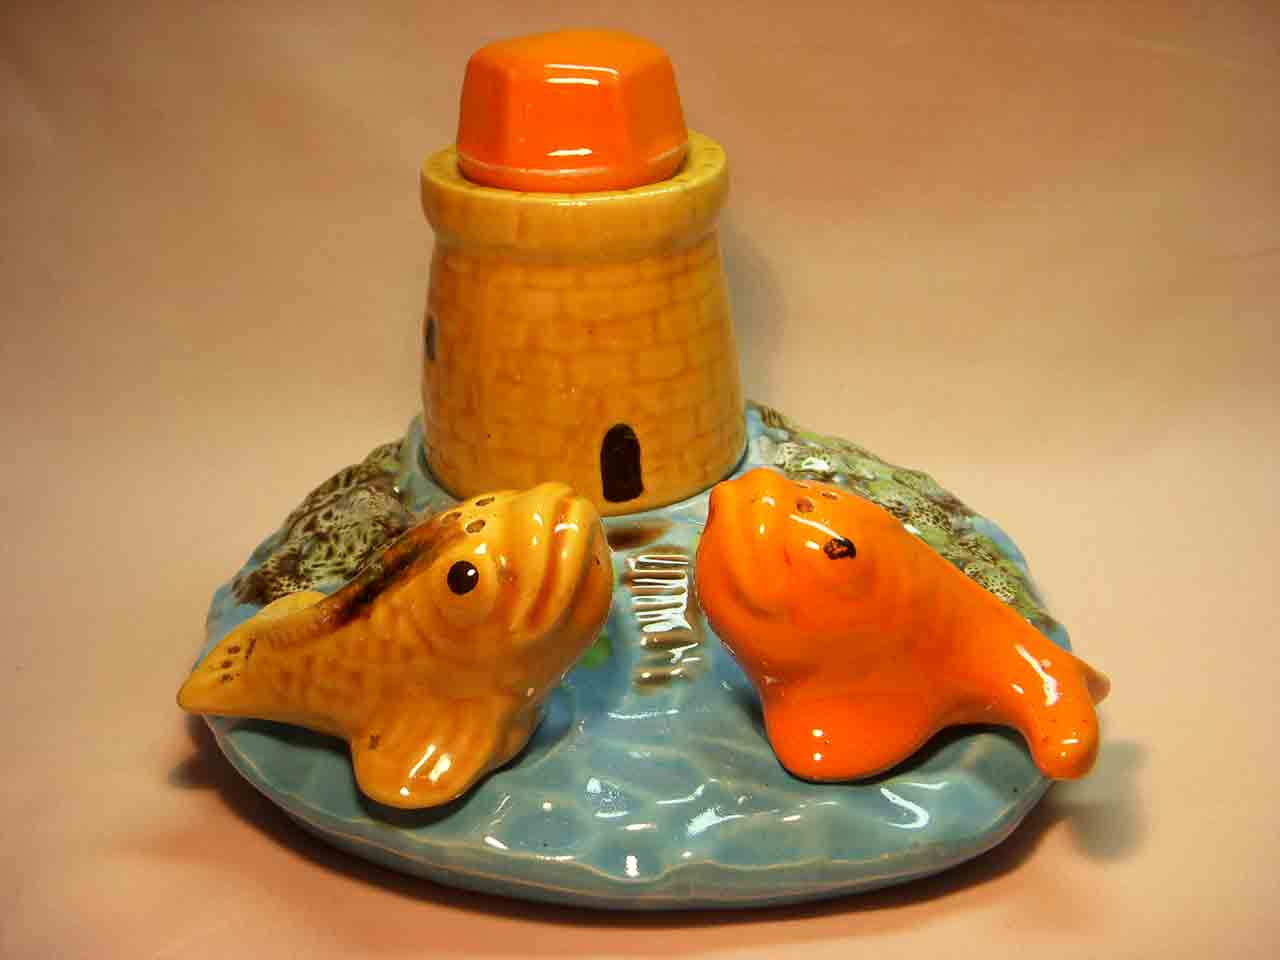 Vallauris salt and pepper shakers - fish with lighthouse condiment